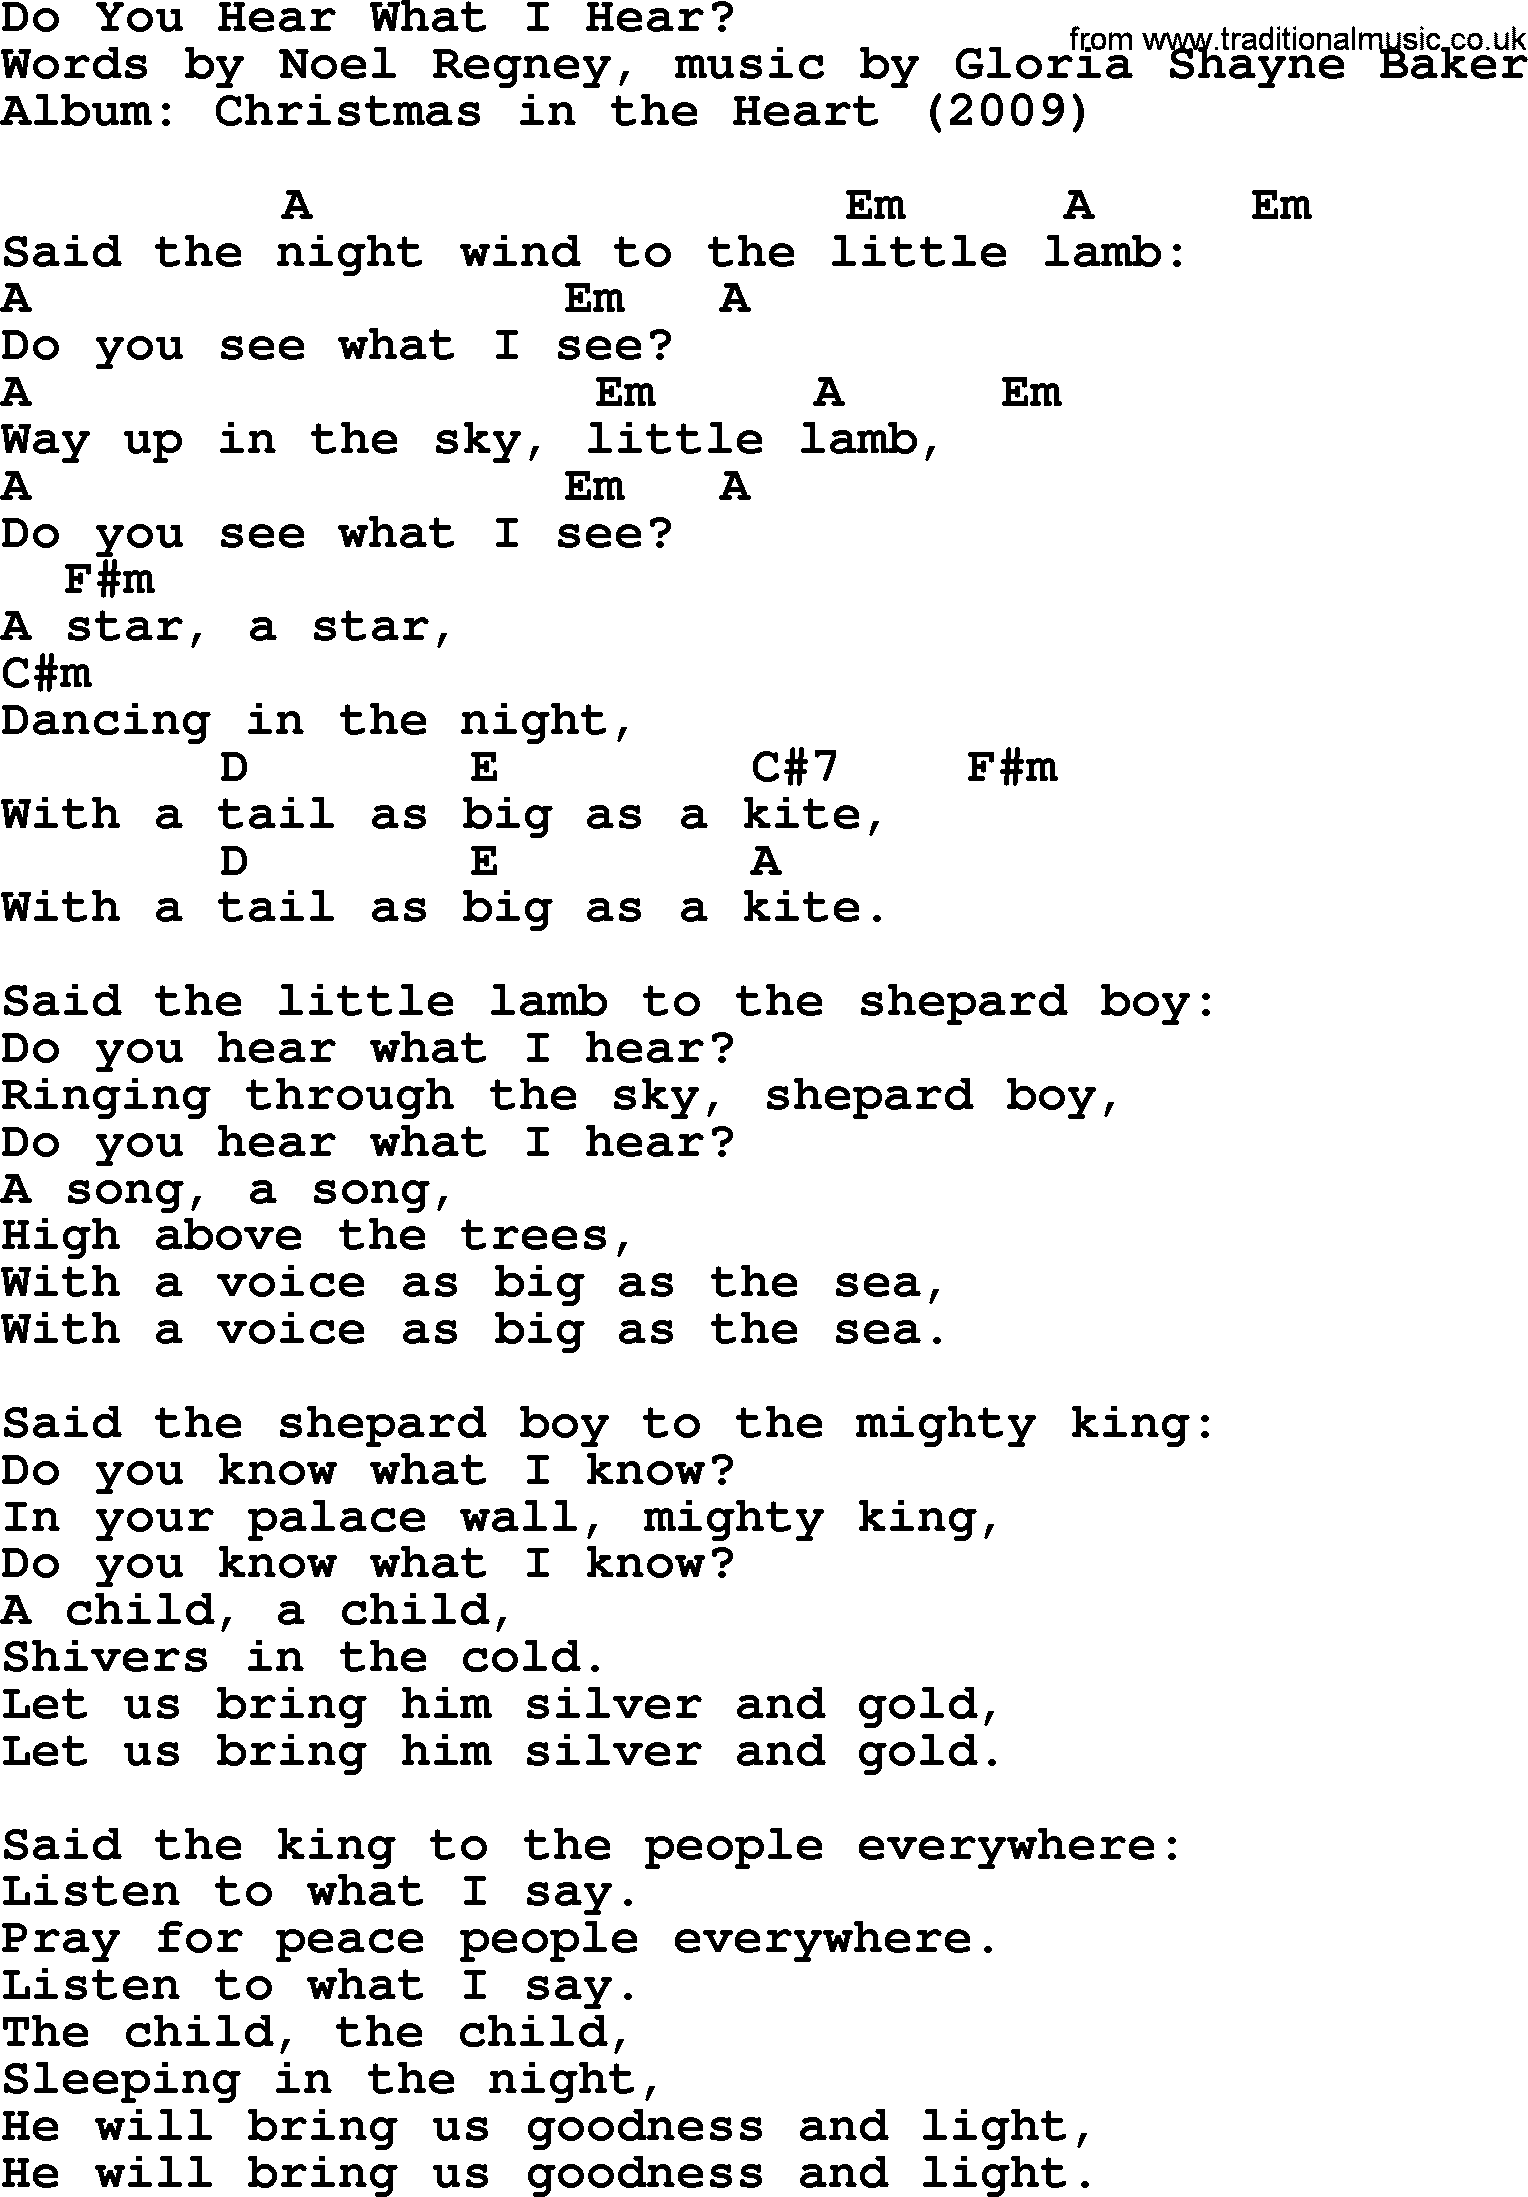 bob dylan song lyrics with chords do you hear what i hear